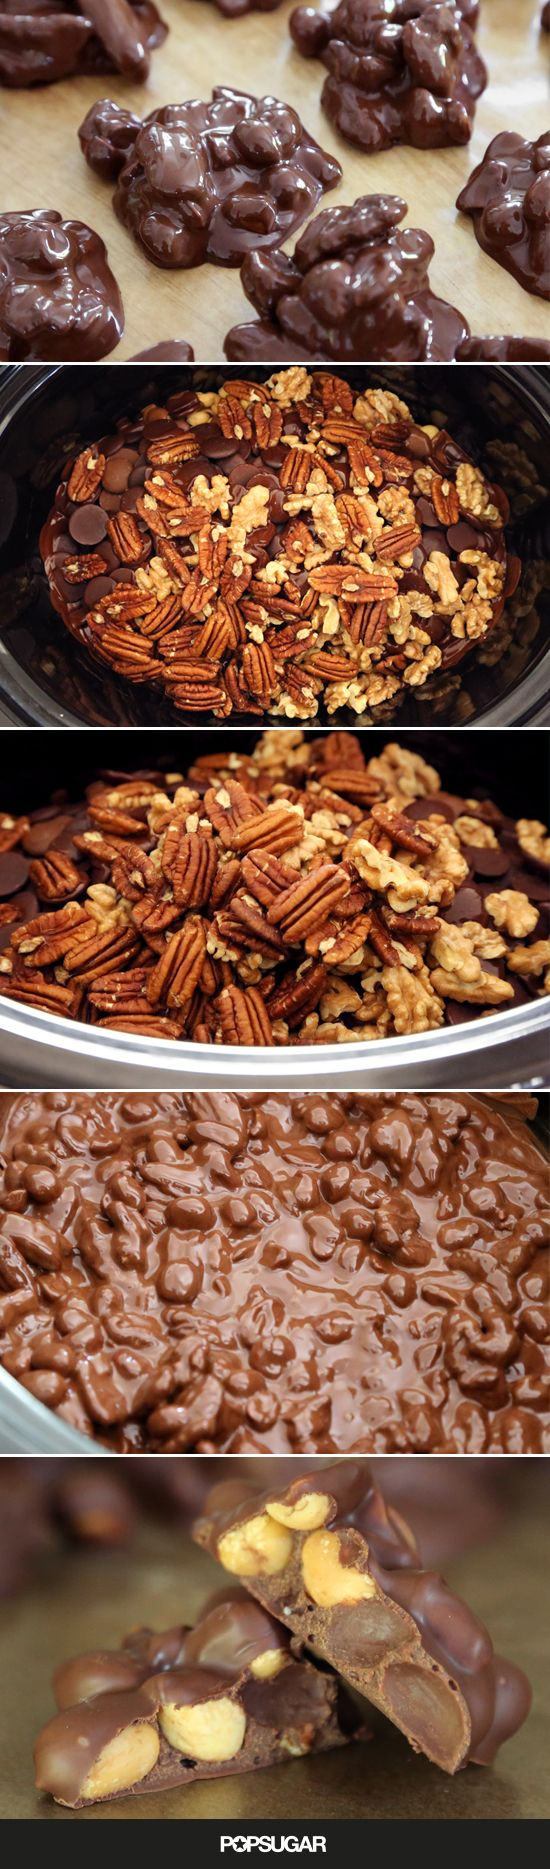 crock pot dessert recipe!